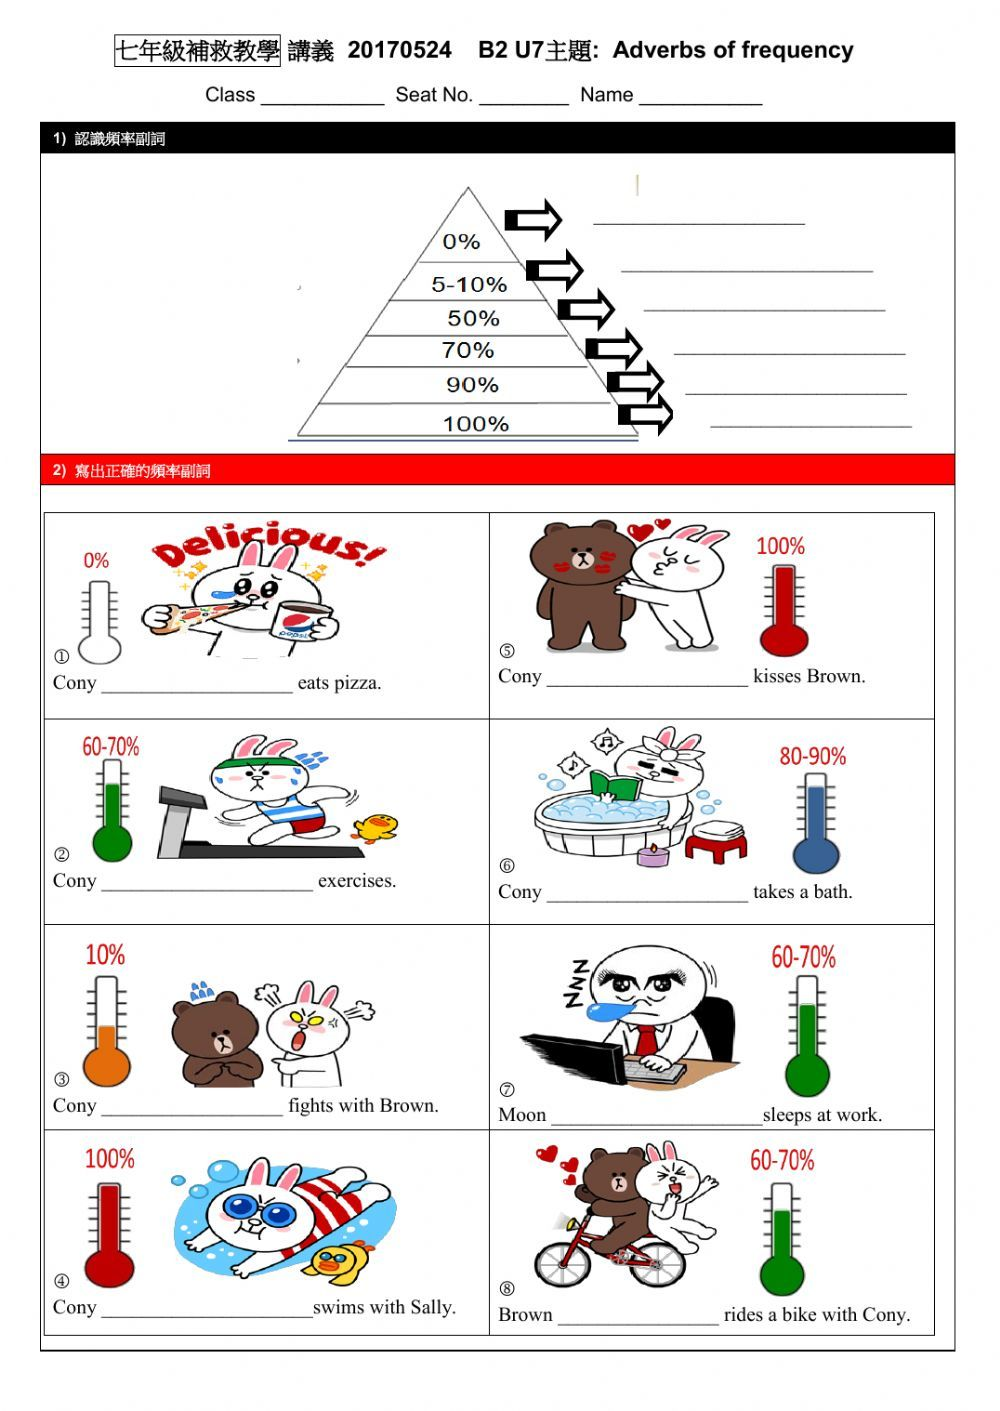 adverbs of frequency online and pdf worksheet. You can do